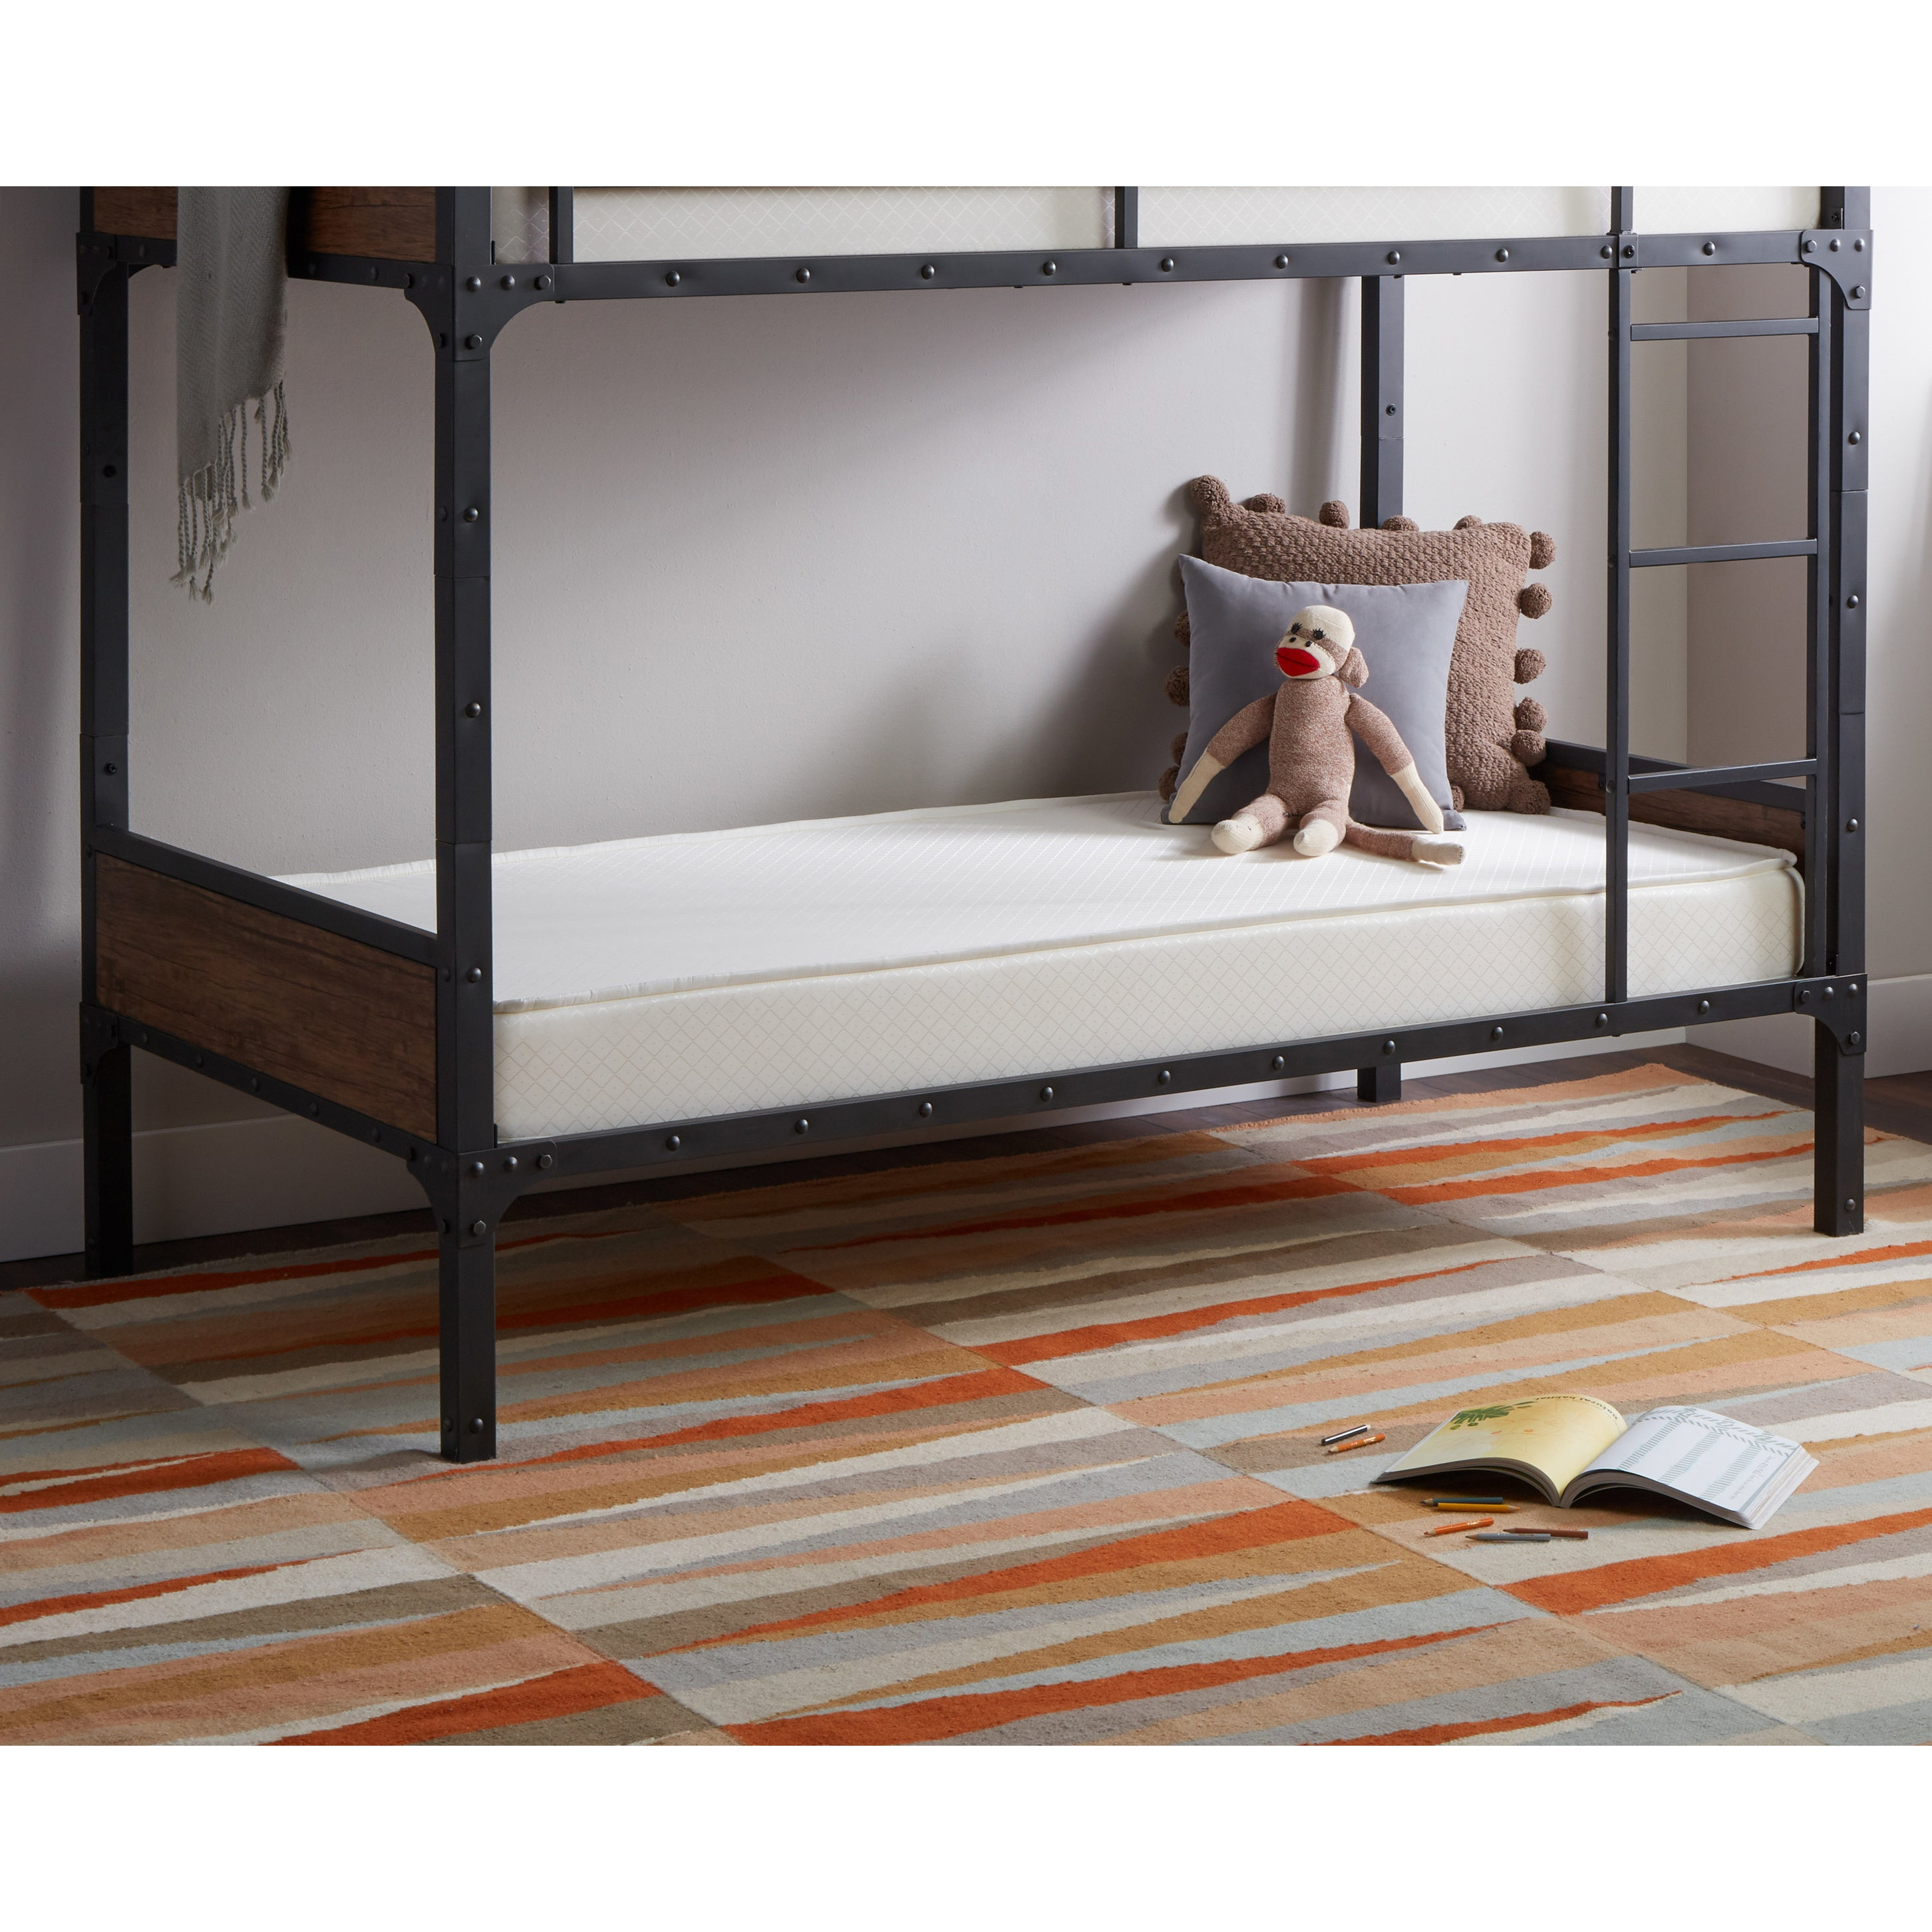 Select Luxury Flippable 6 Inch Twin Size Foam Mattress On Free Shipping Today 3892093